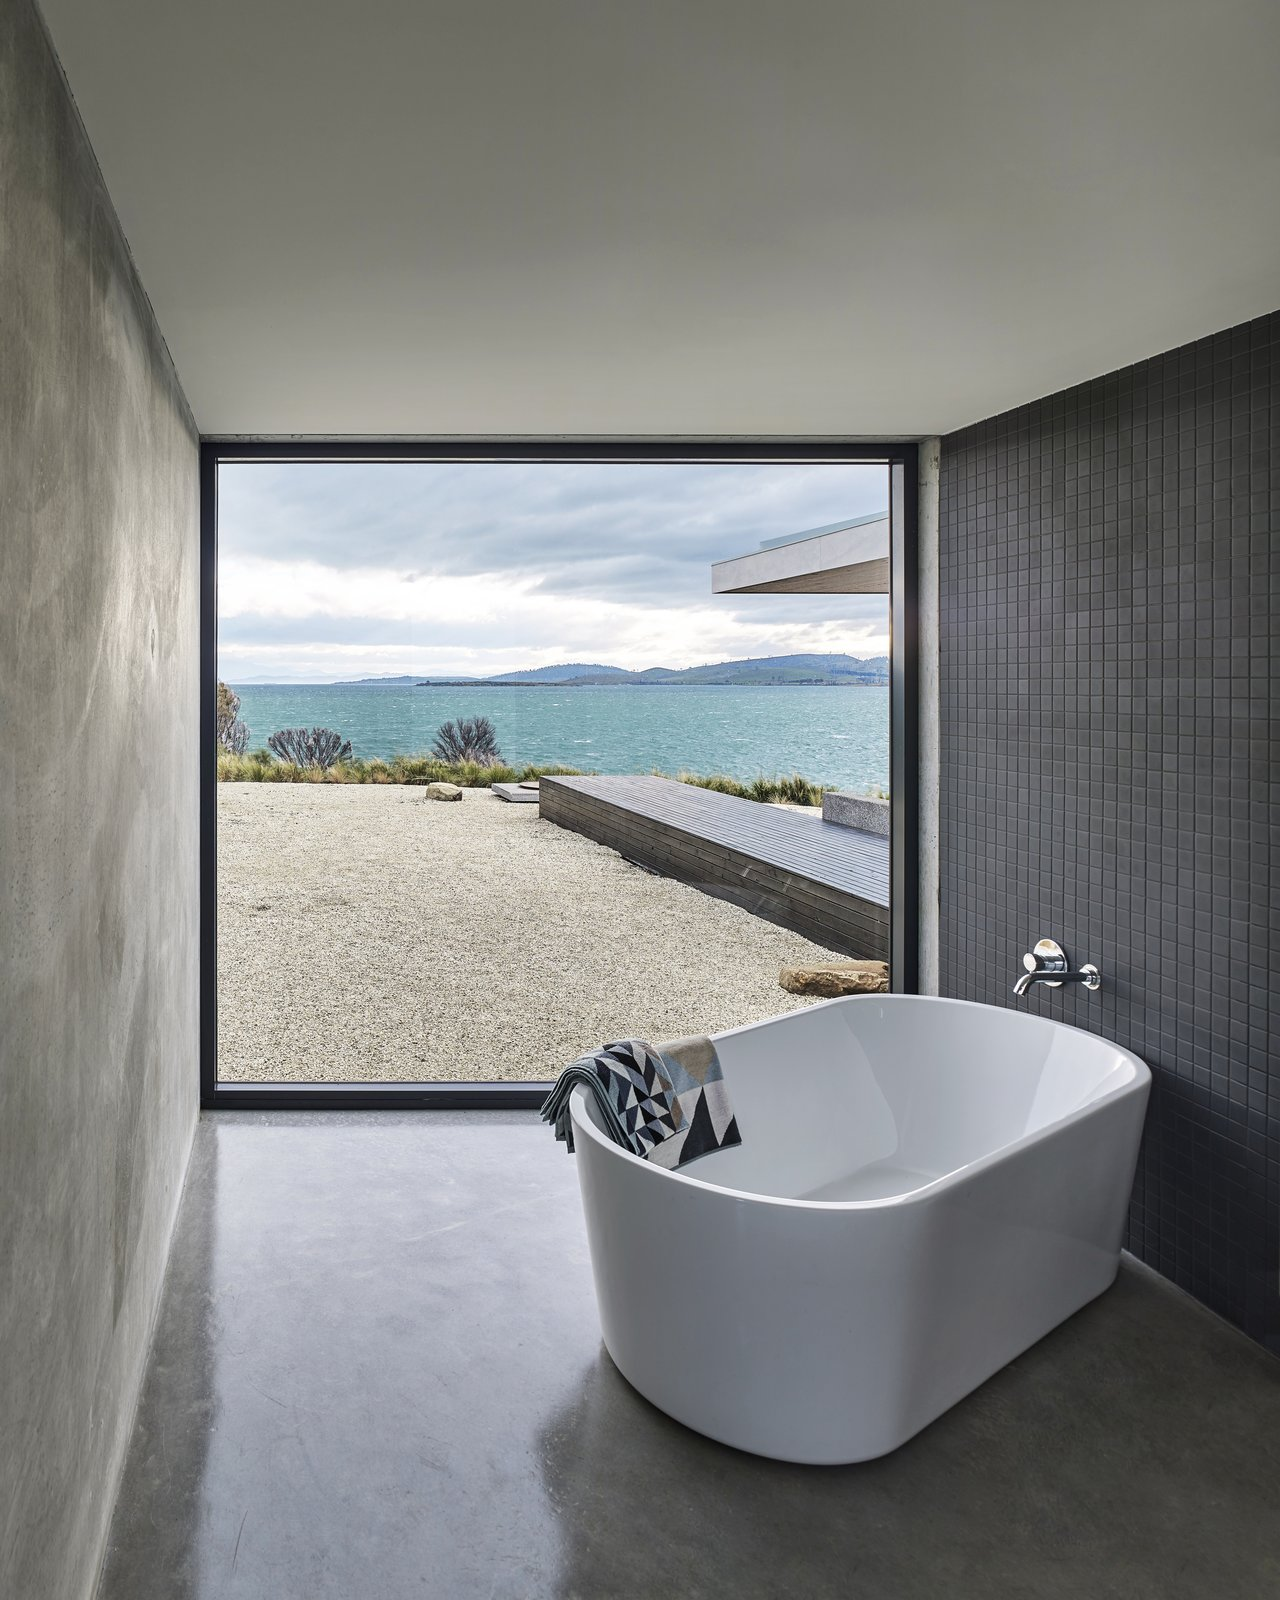 Photo 38 of 40 in 40 Modern Bathtubs That Soak In the View from A ...